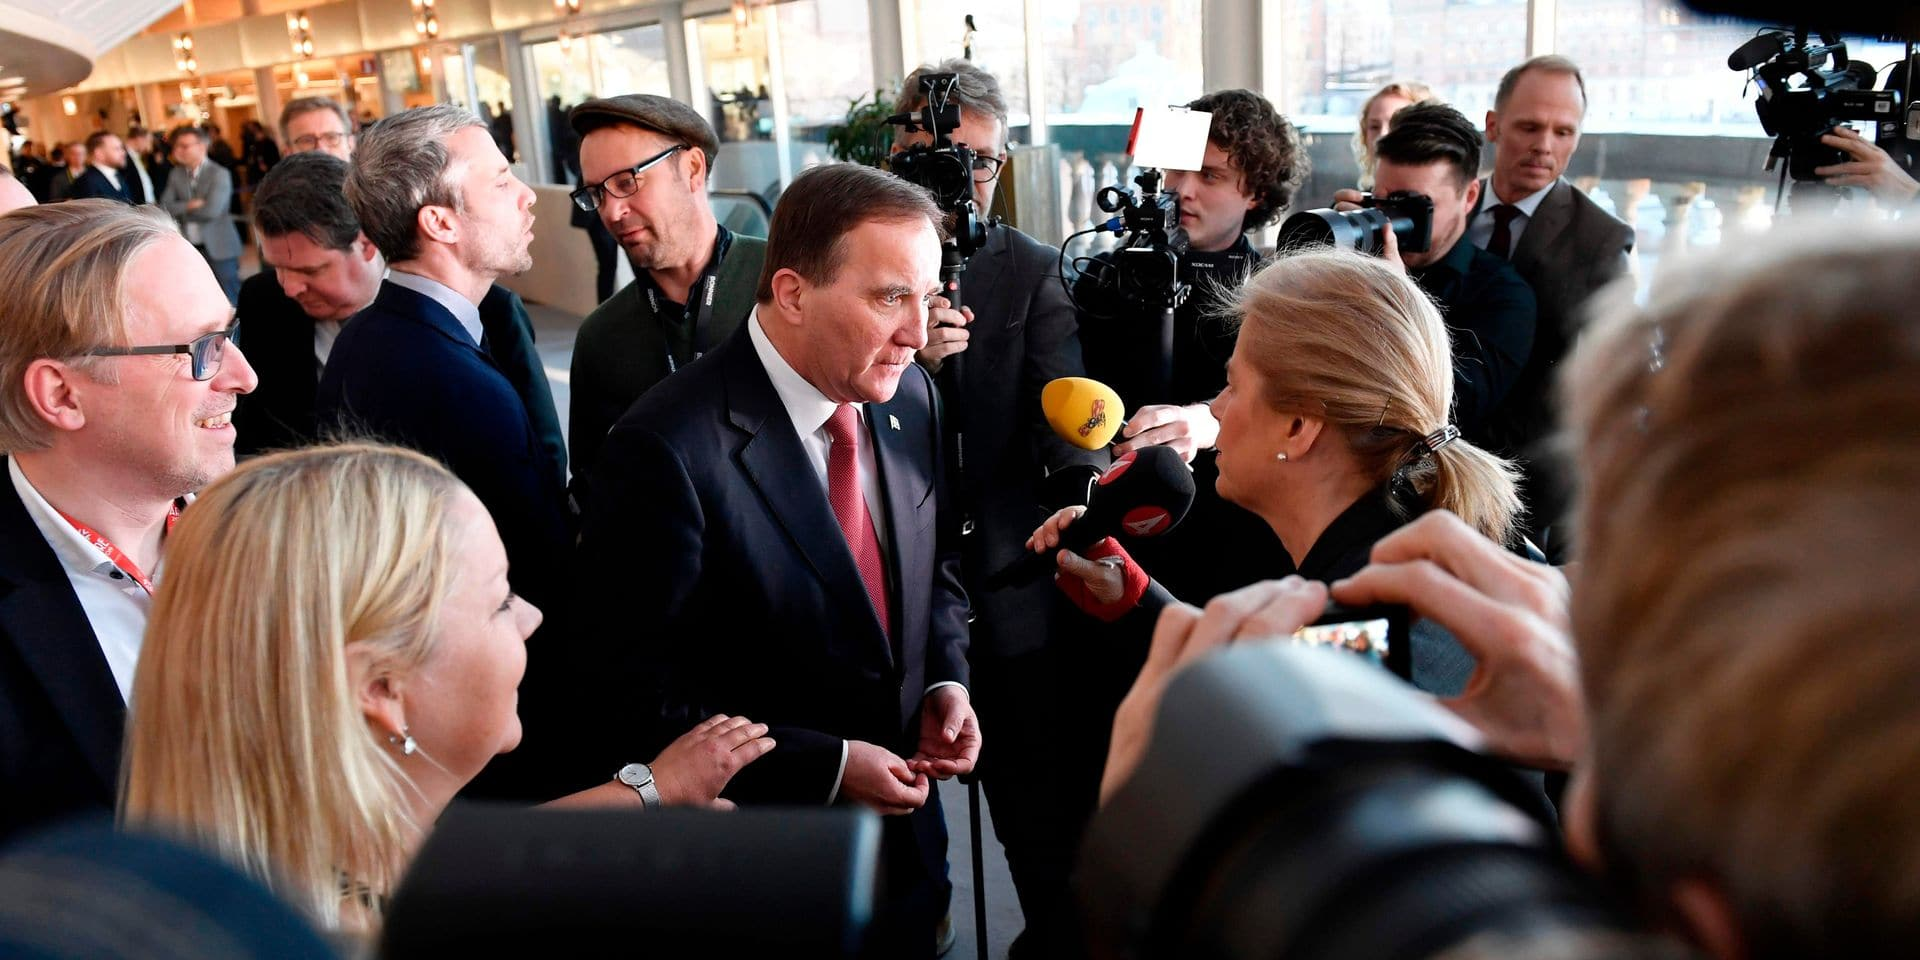 Social Democrat leader Stefan Lofven (C) gives an interview after being elected for a second term as prime minister on January 18, 2019 at the Swedish Parliament Riksdagen in Stockholm. - Sweden ended a four-month political vacuum when lawmakers elected Prime Minister Stefan Lofven to a second term, after he elbowed out the far-right to save one of Europe's few left-wing governments. Lofven's new minority centre-left government -- comprising his Social Democrats and the Greens -- won the backing of the Centre and Liberal parties, until now members of the four-party centre-right opposition Alliance. (Photo by Stina STJERNKVIST / TT News Agency / AFP) / Sweden OUT